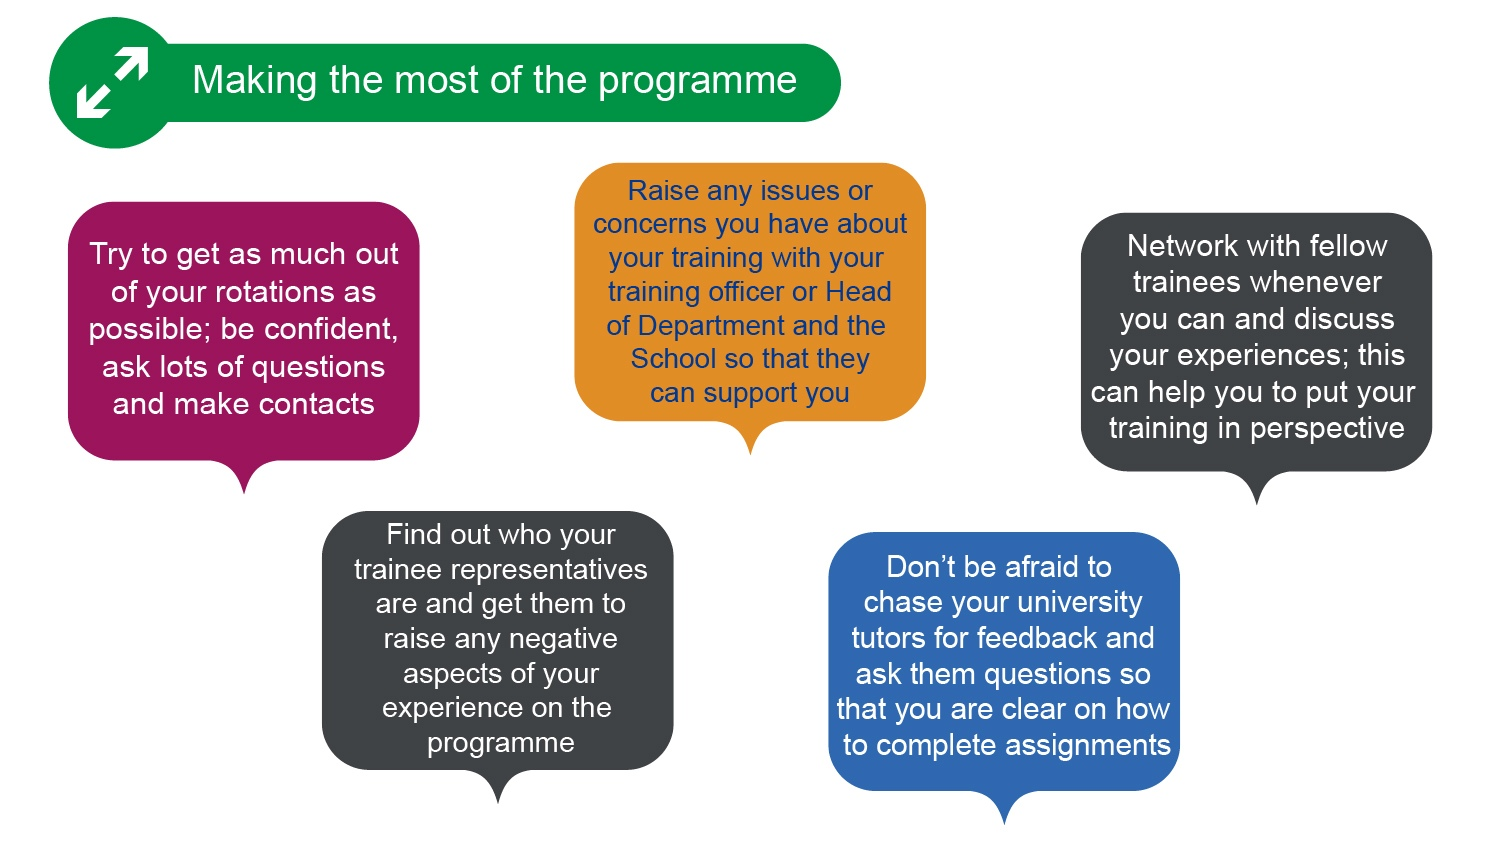 Image showing quotes from trainees regards making the most of the programme